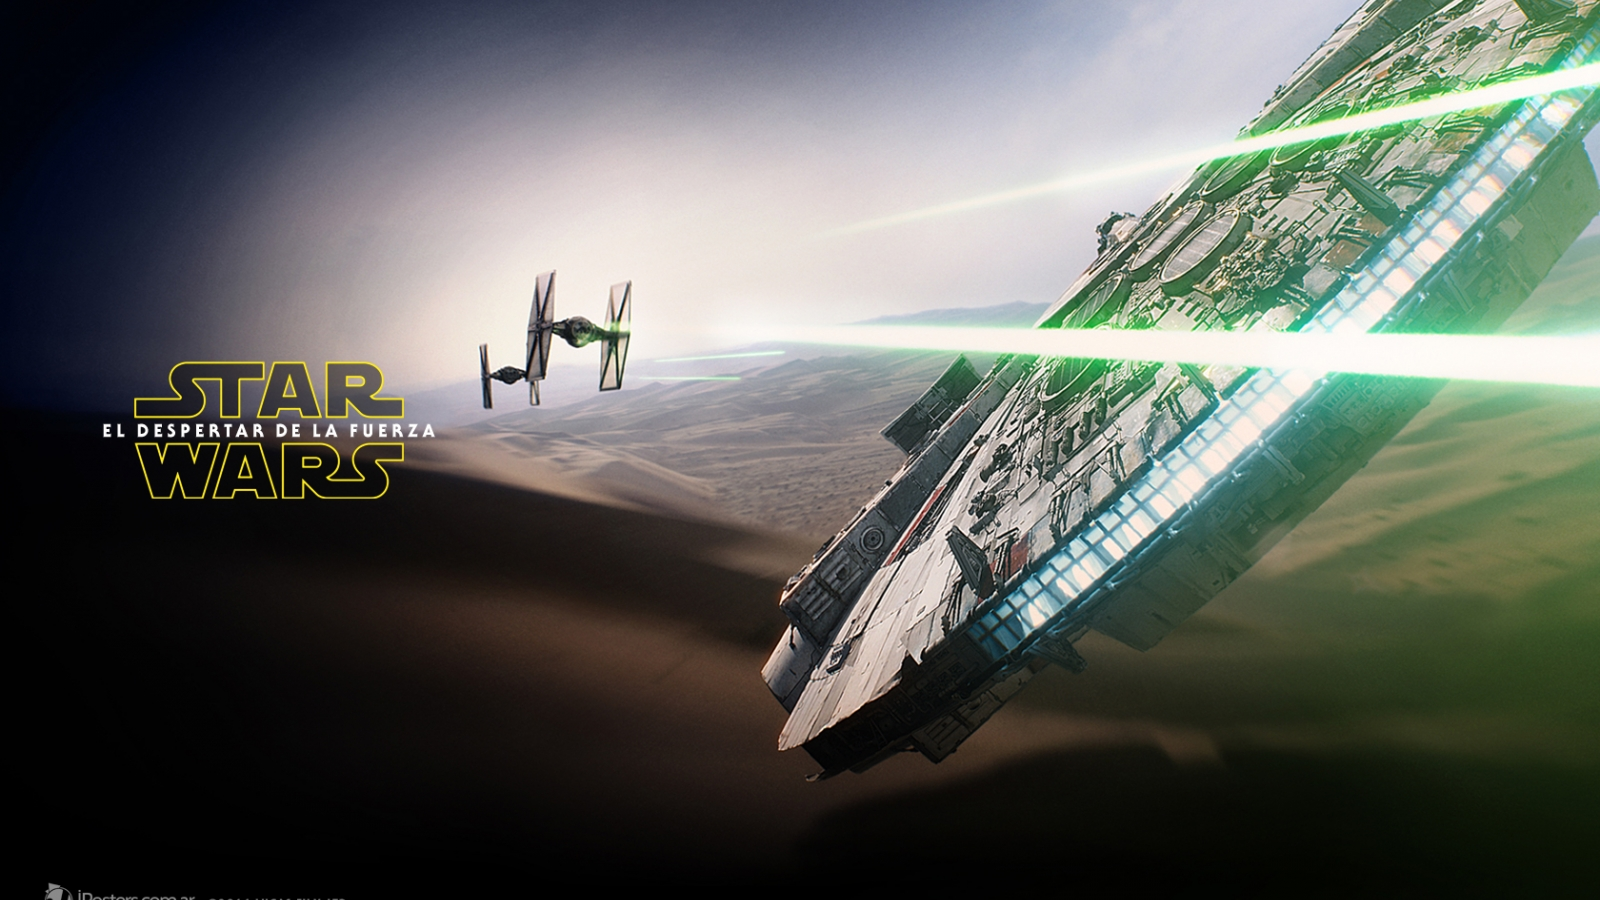 Star Wars Mac Wallpaper Posted By Zoey Johnson